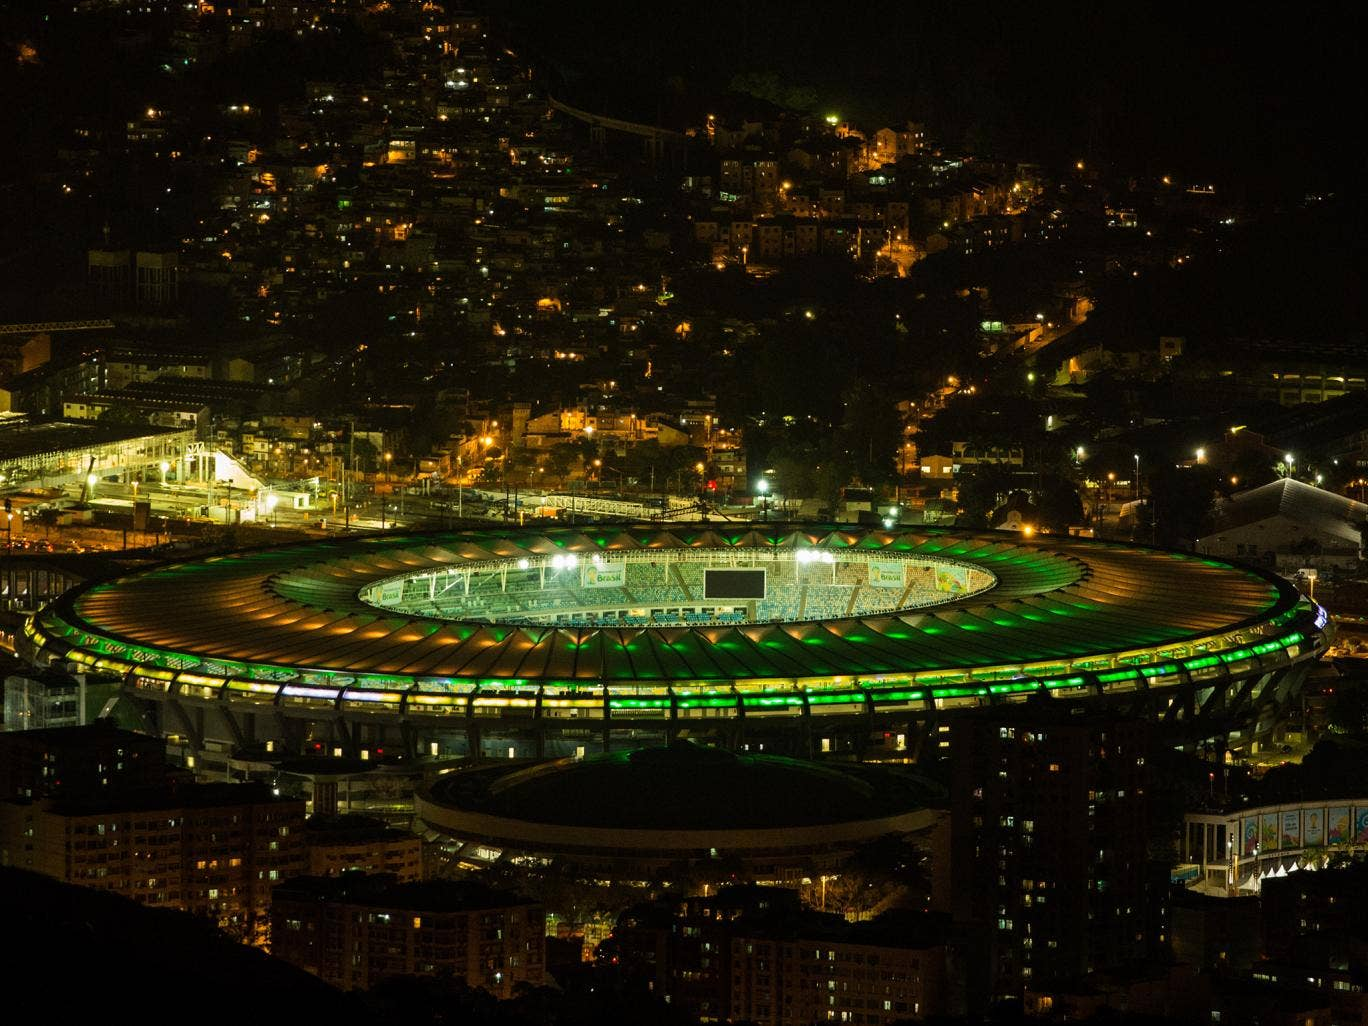 A view of the Maracana which will host the World Cup final